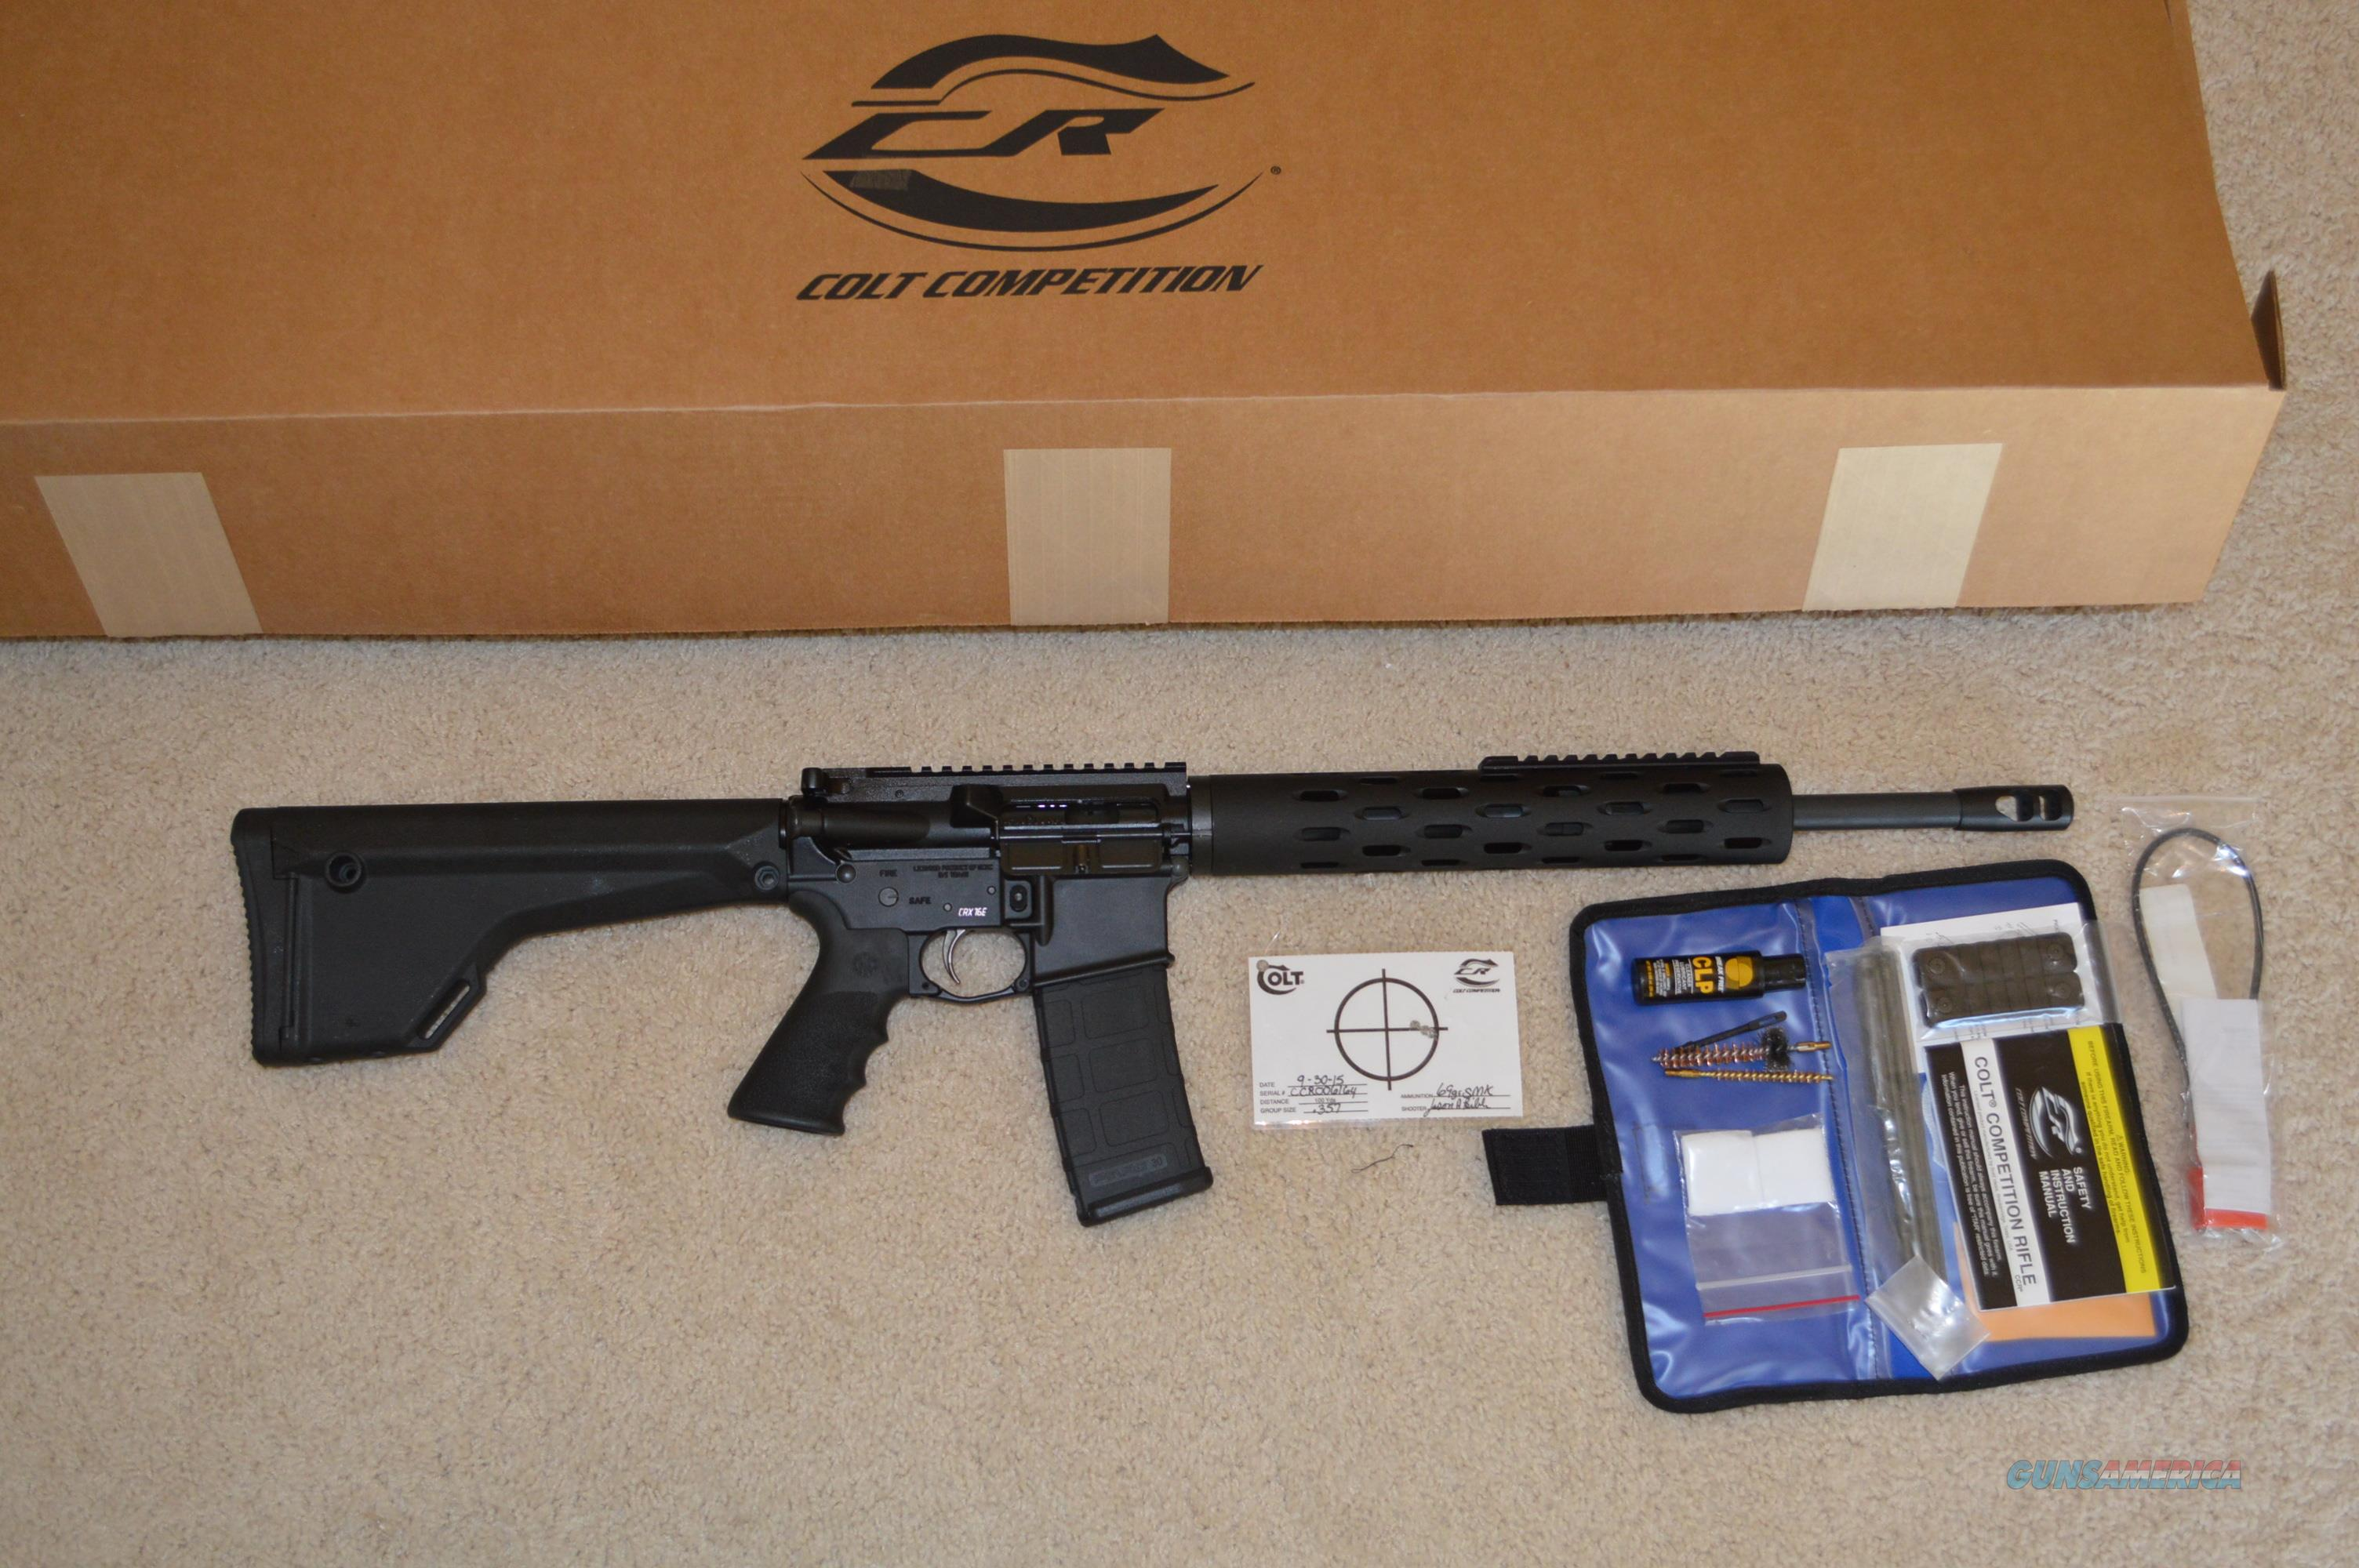 Colt Competition CRX-16E 0.357 MOA  Guns > Rifles > Colt Military/Tactical Rifles